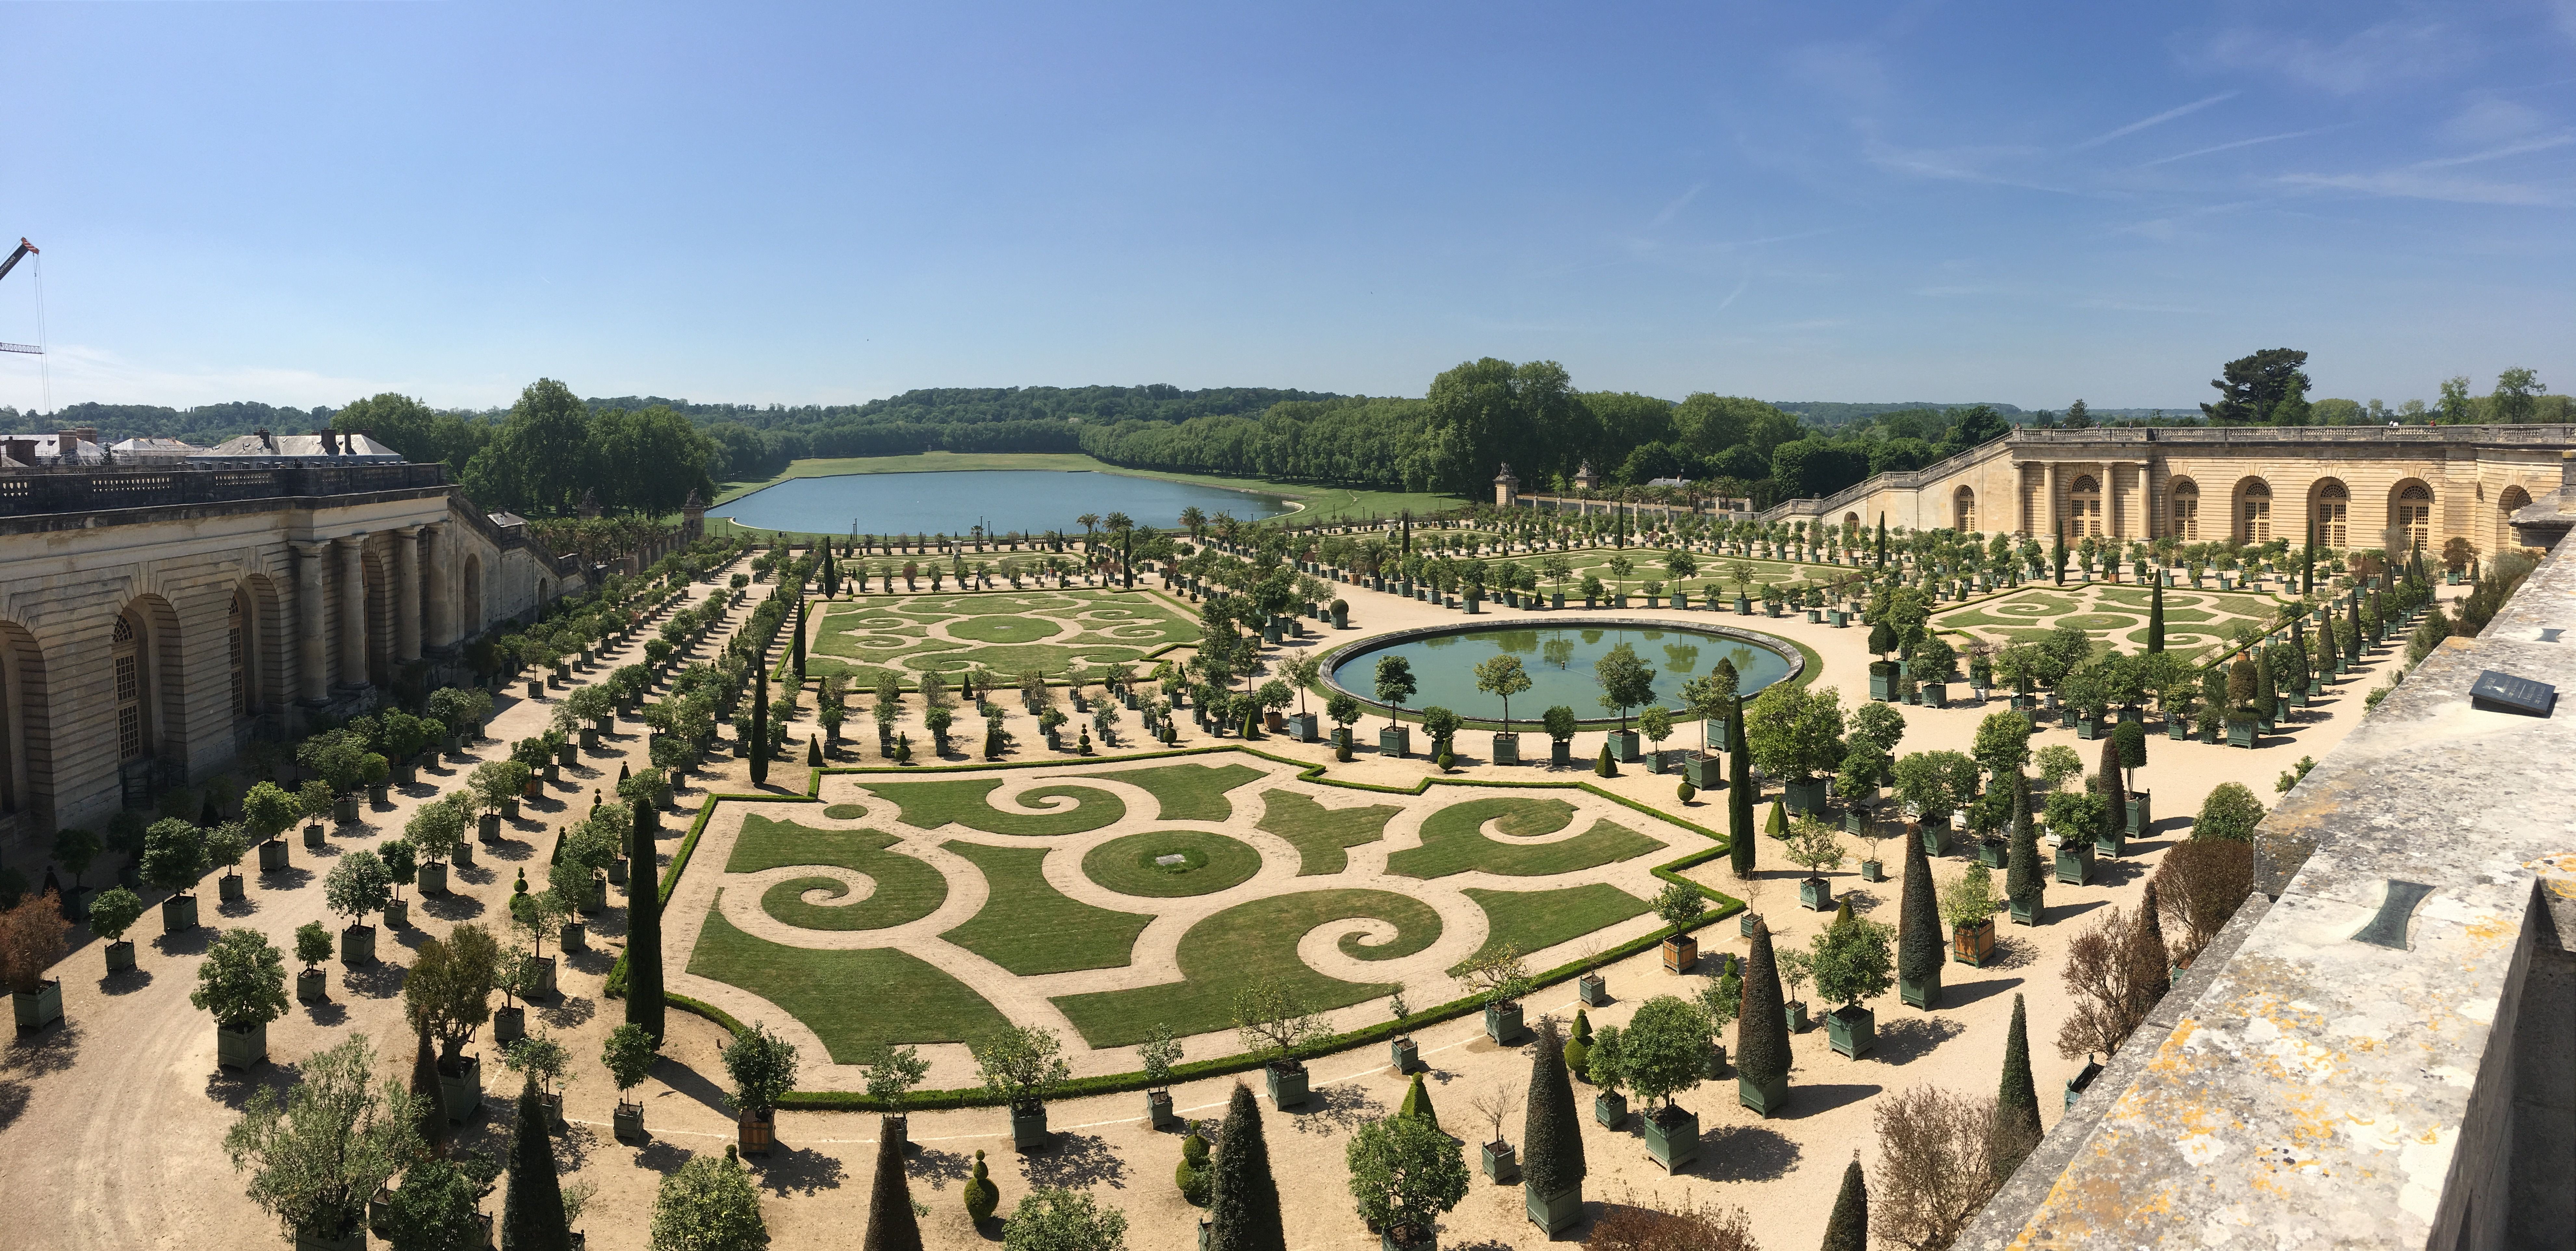 This Is One Side Of The Jardin At The Palace Of Versailles Palace Of Versailles Study Abroad Outdoor